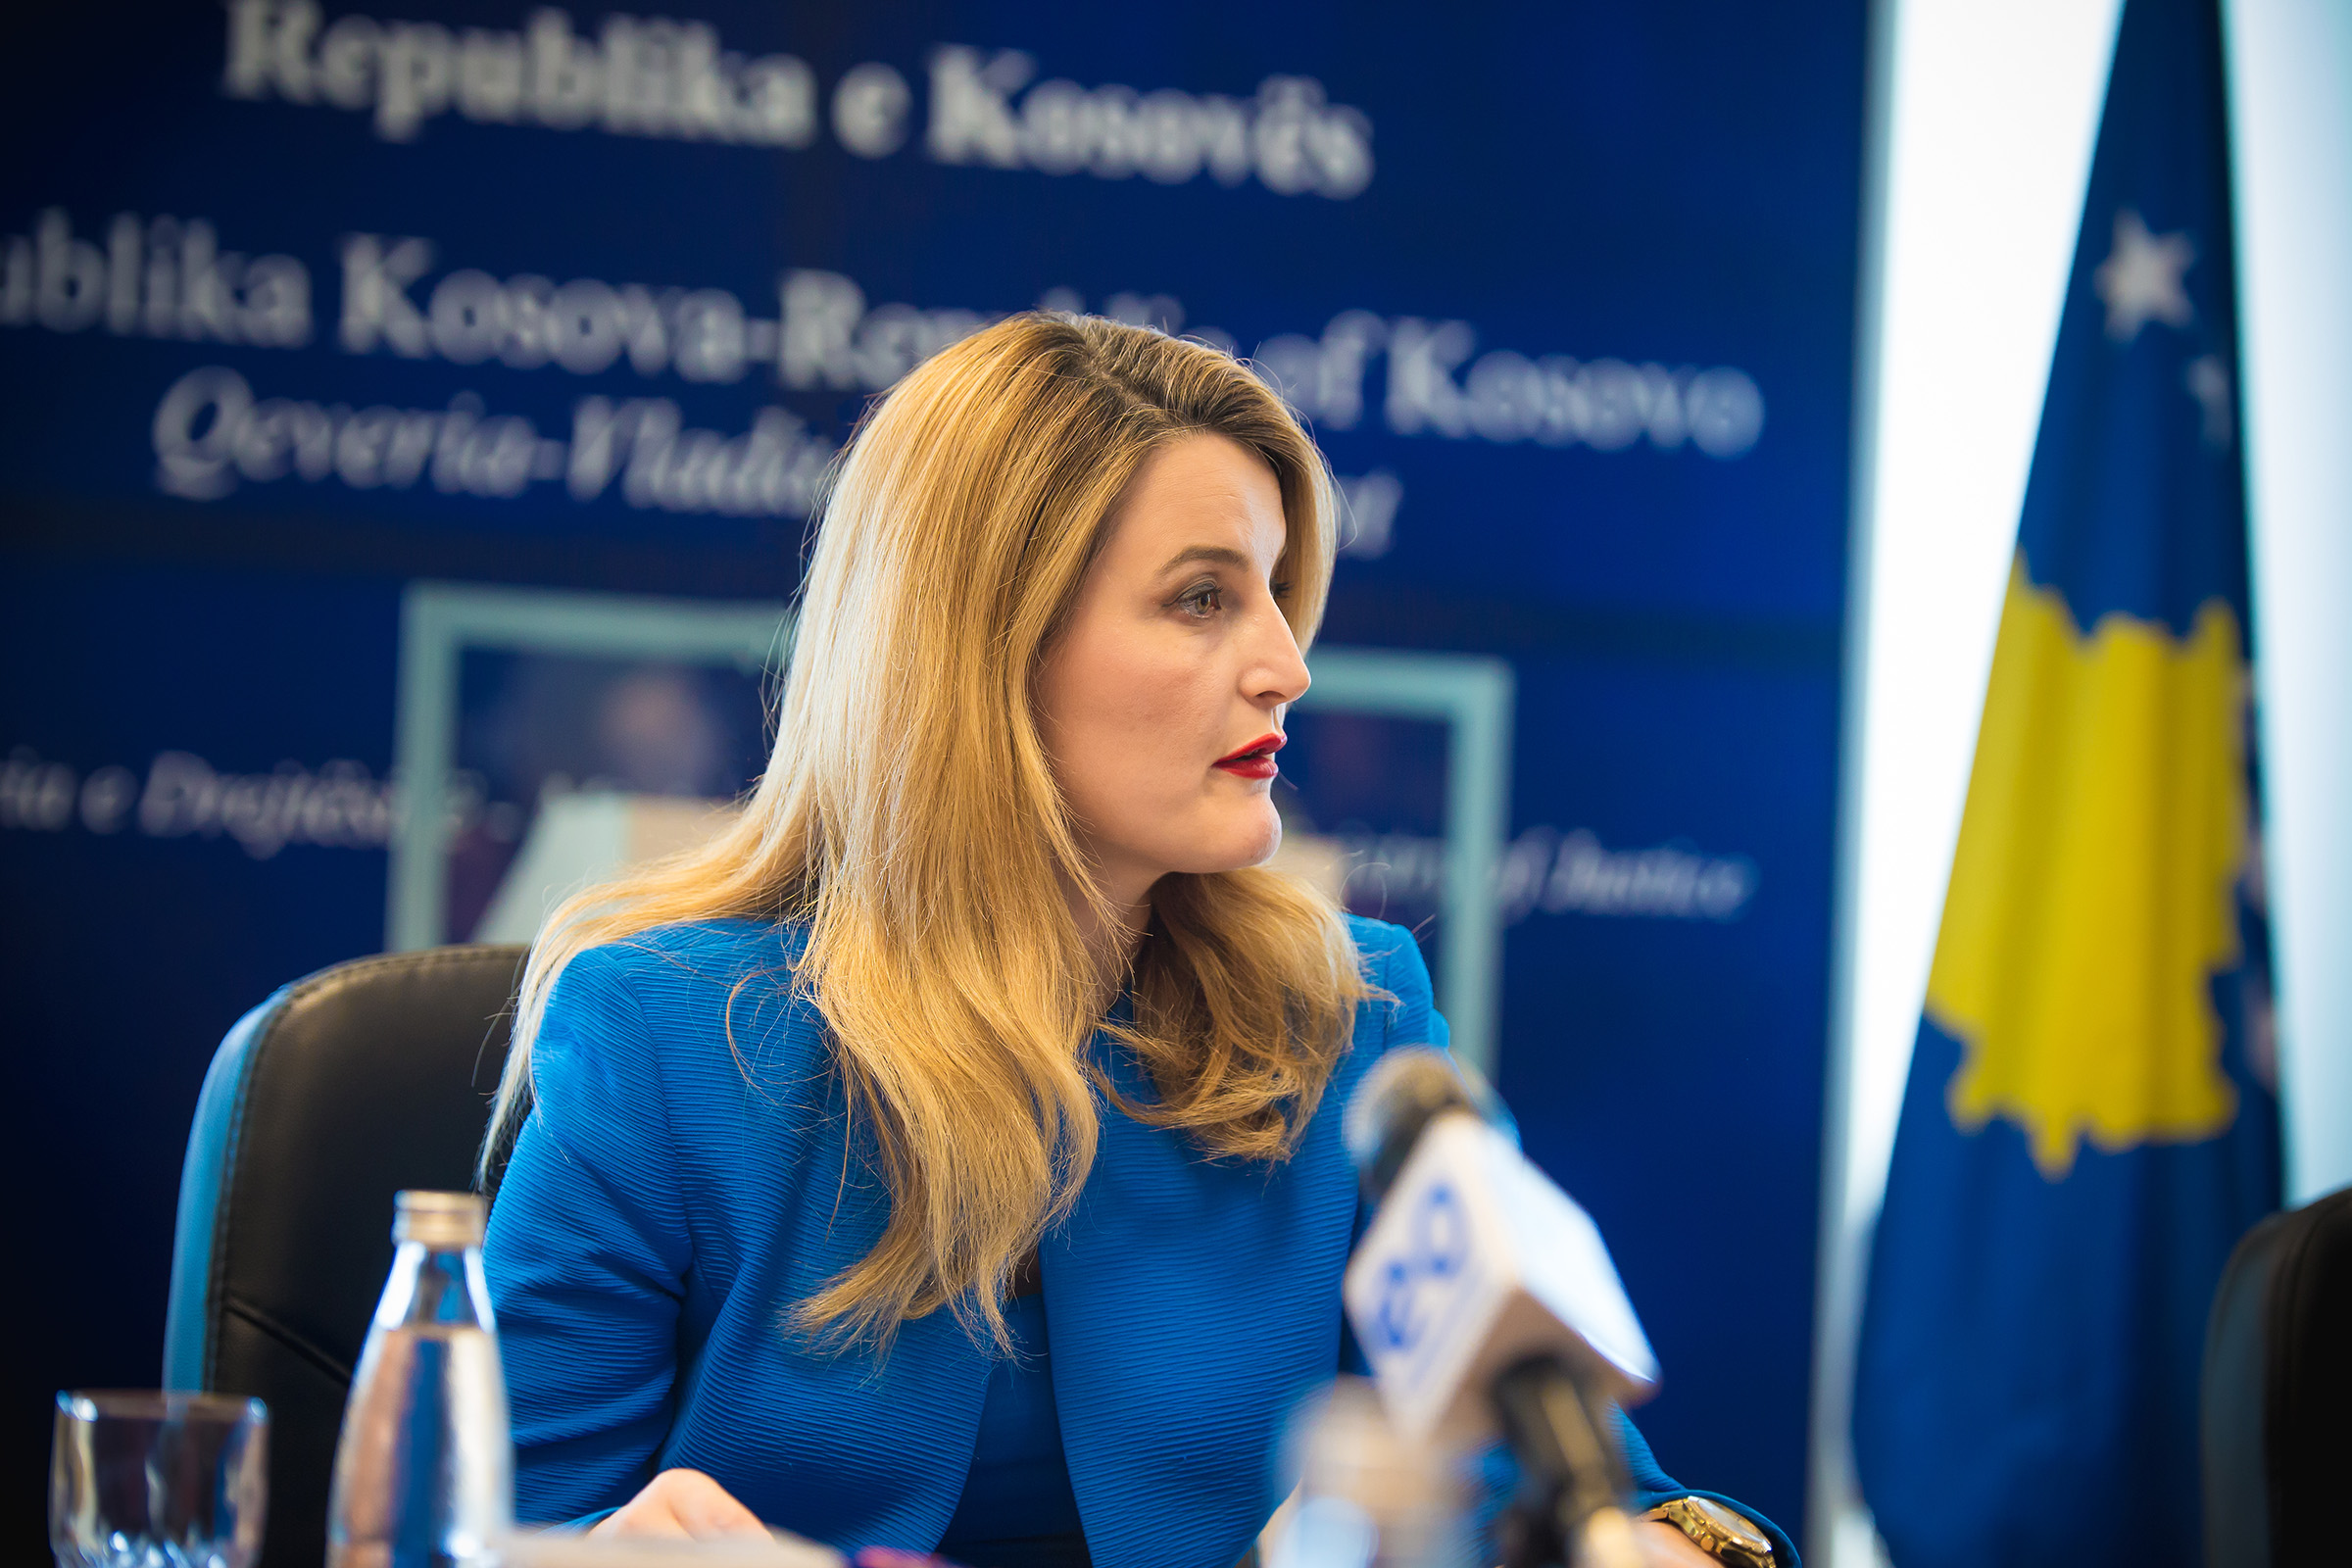 Kosovo's minister of Integration gives hope for the visa liberalisation to take place in June